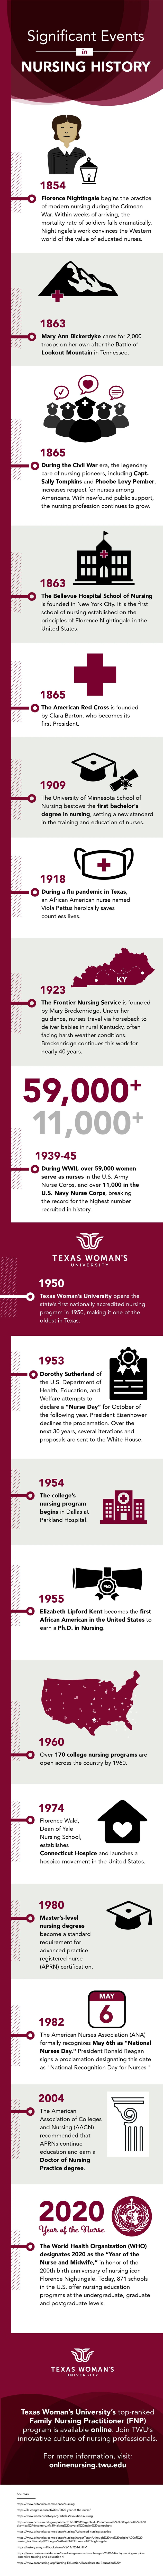 The History Of Nursing Infographic Texas Woman S University